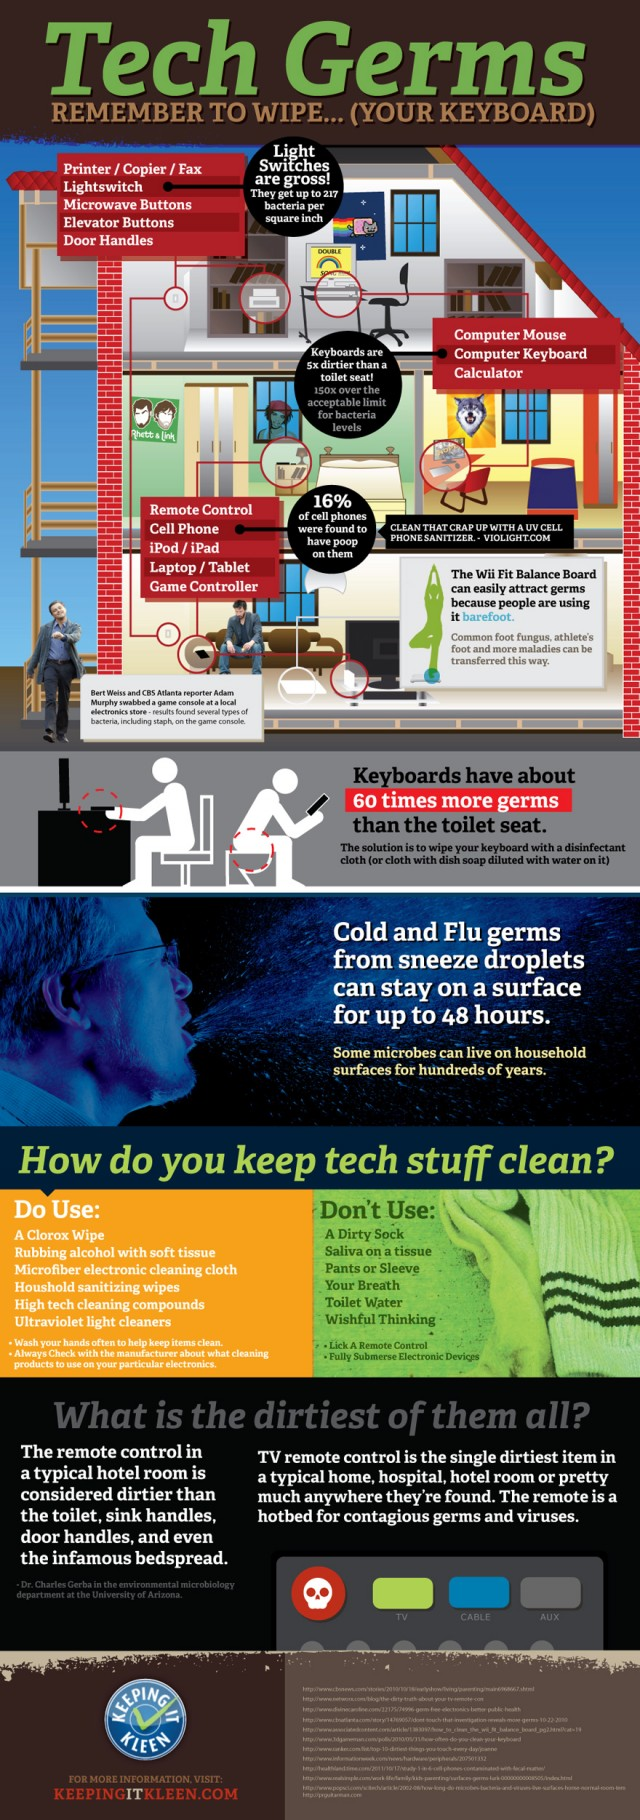 tech-germs-640x1820